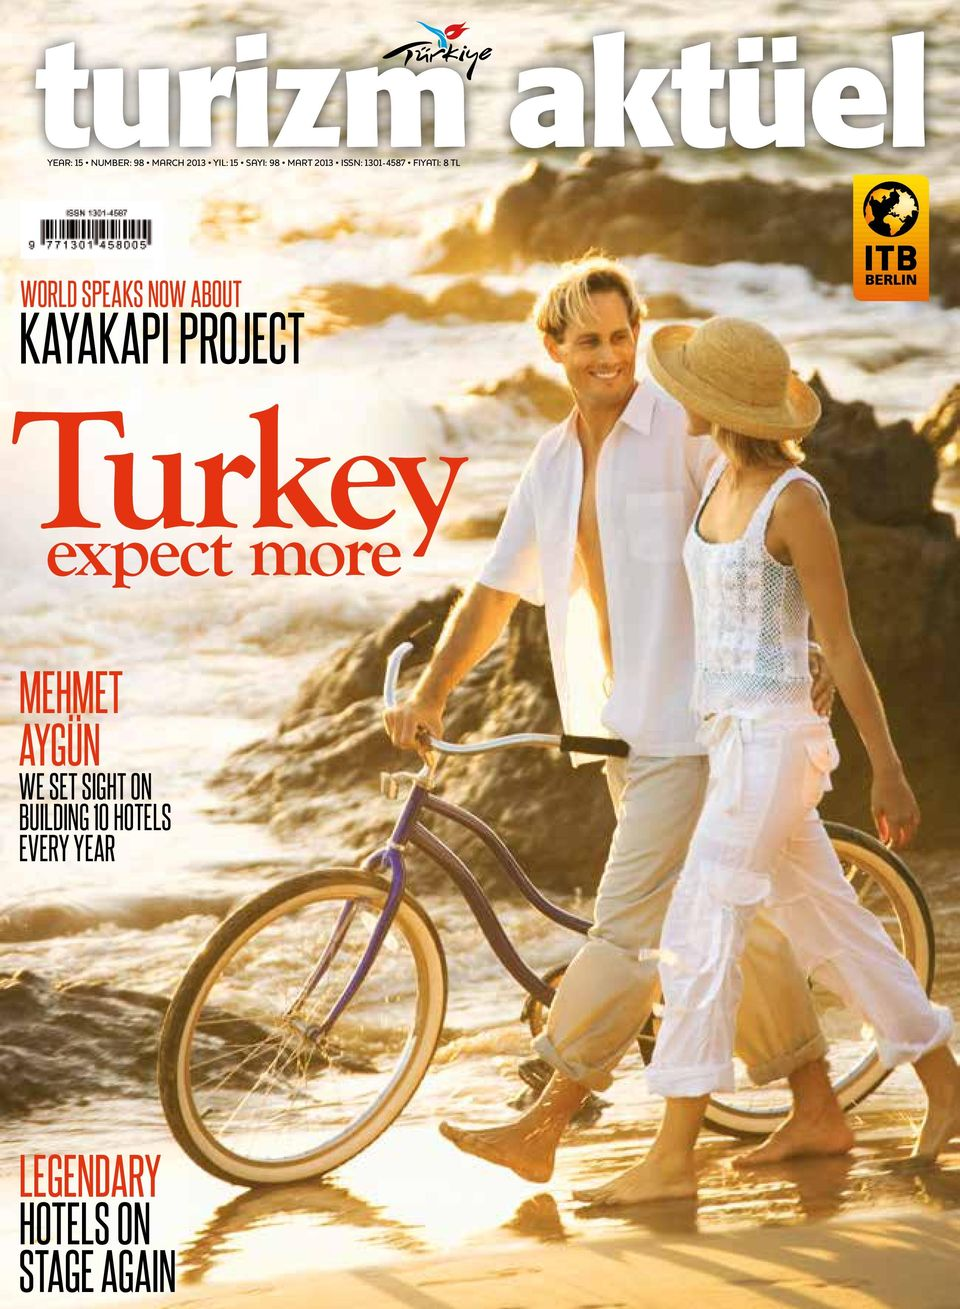 TL WORLD SPEAKS NOW ABOUT KAYAKAPI PROJECT Turkey expect